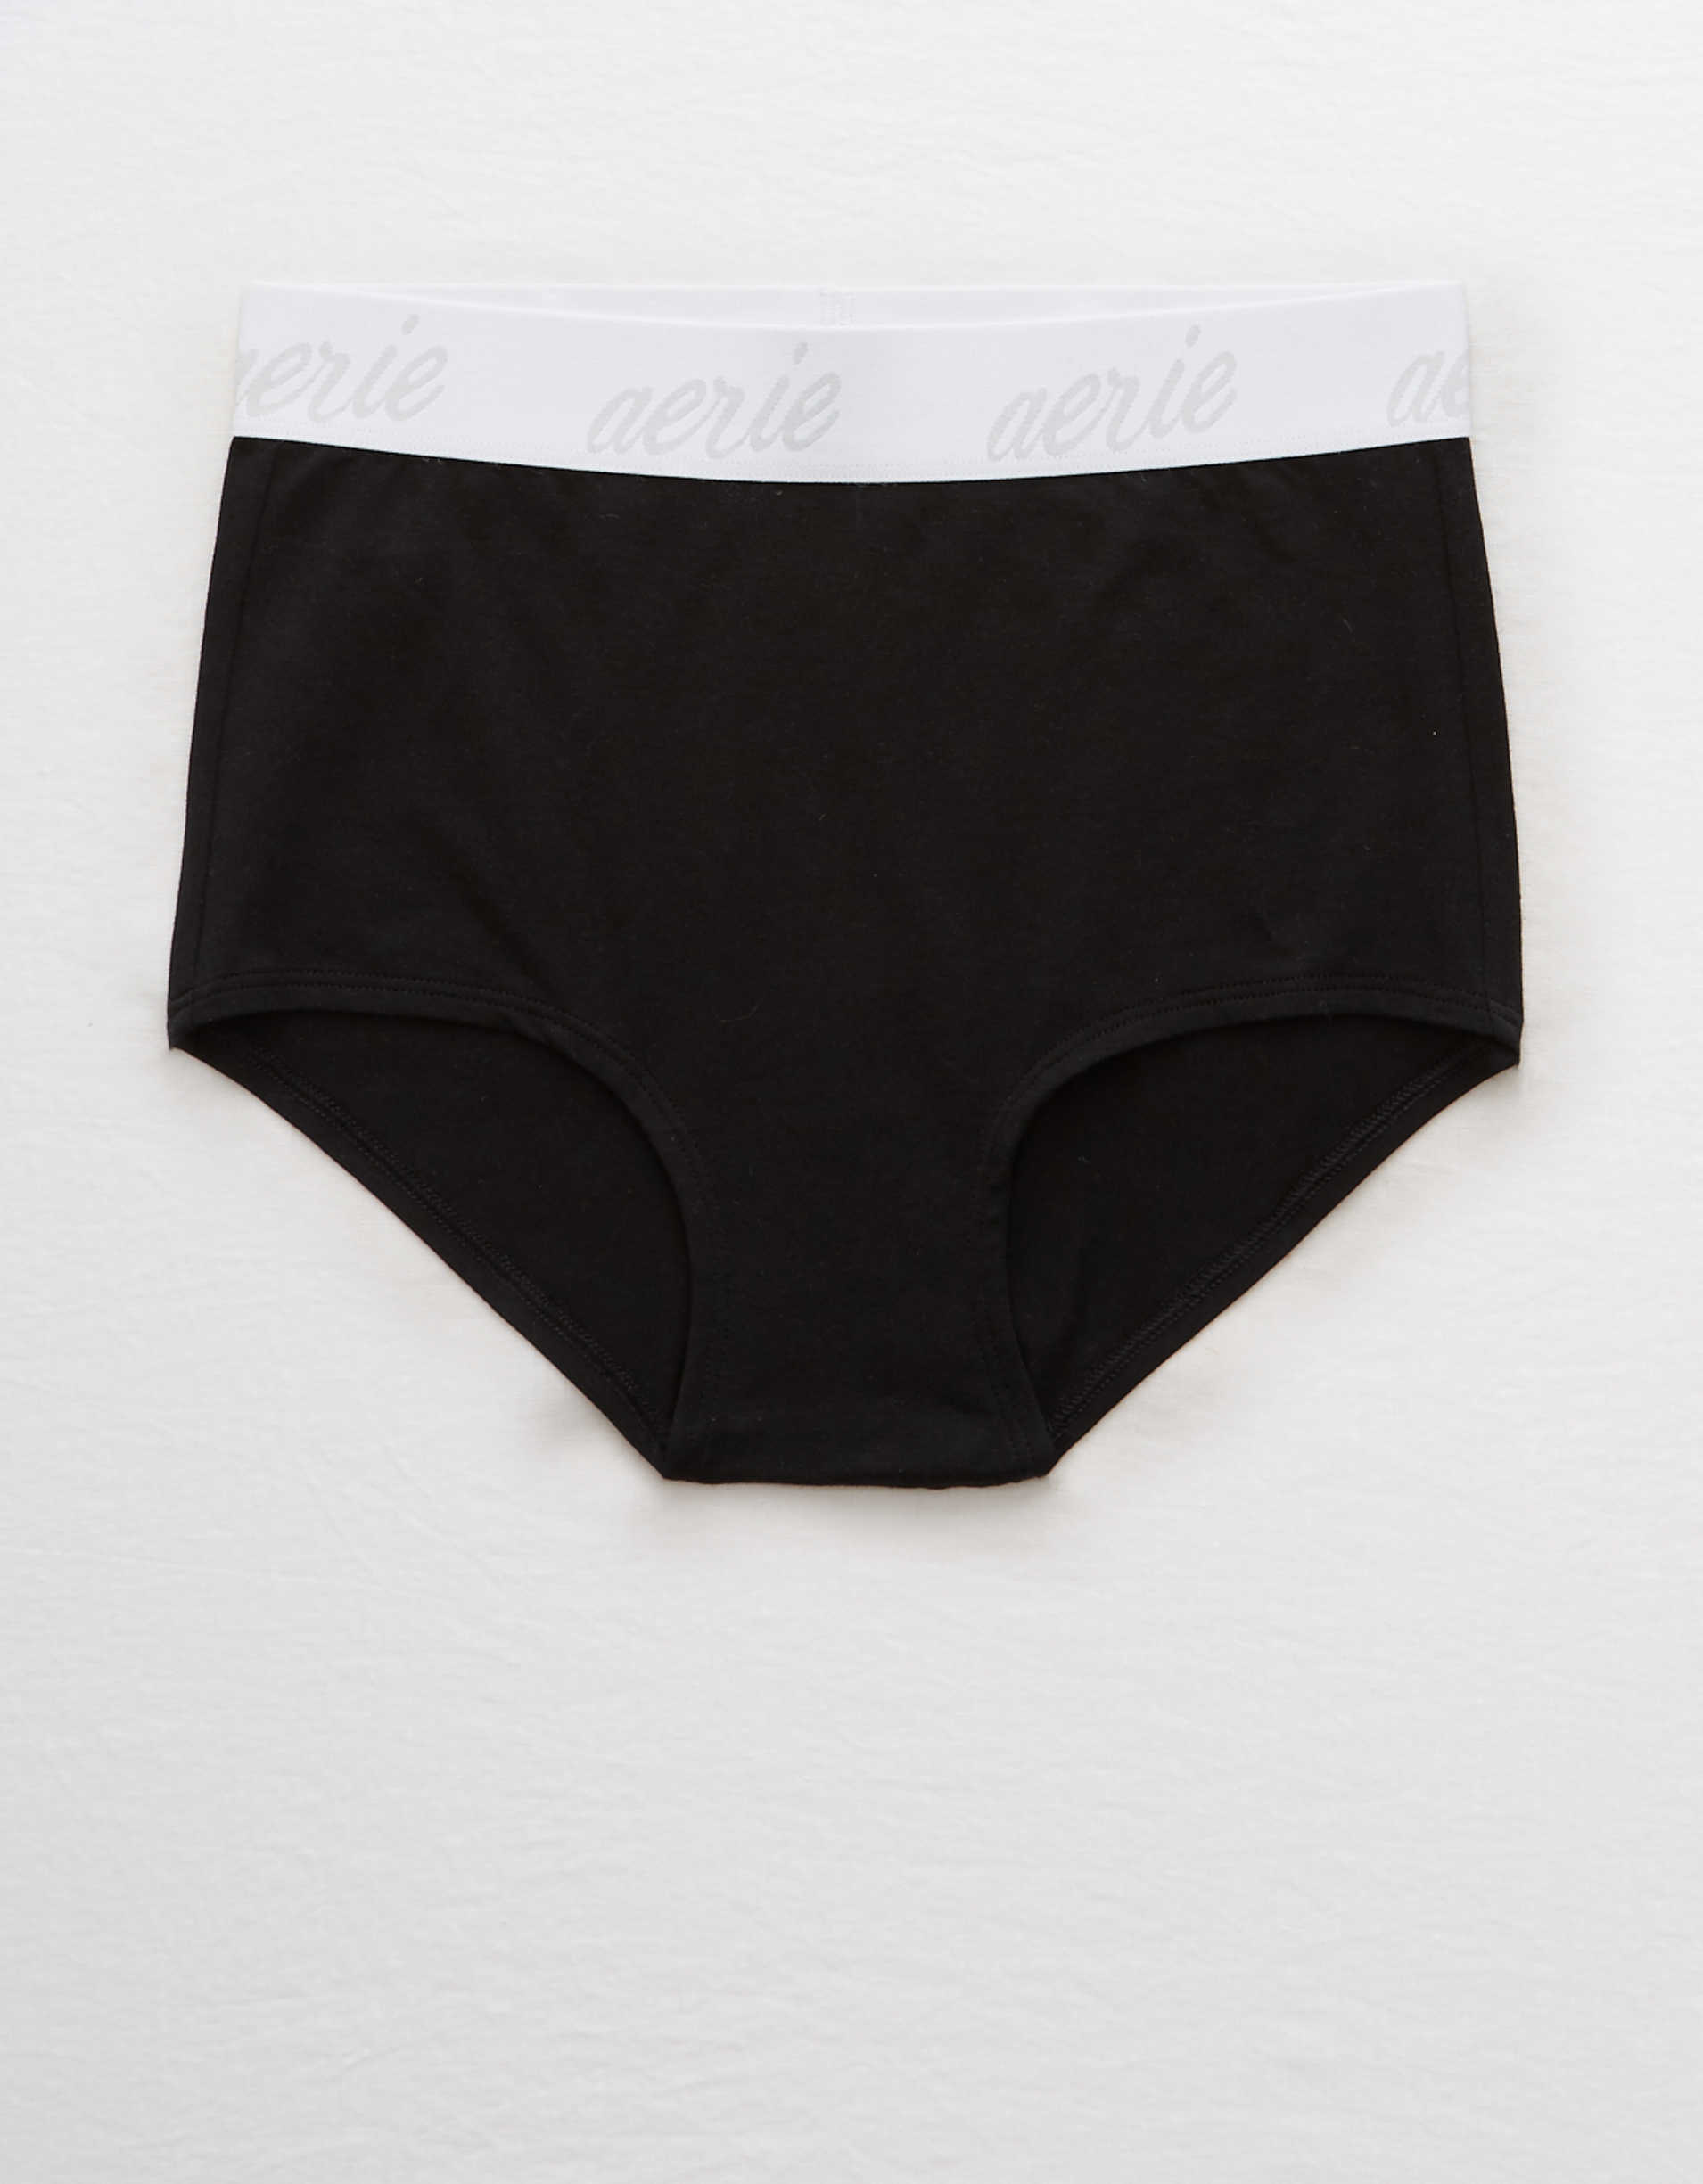 Aerie Cotton Logo High Waisted Boybrief Underwear